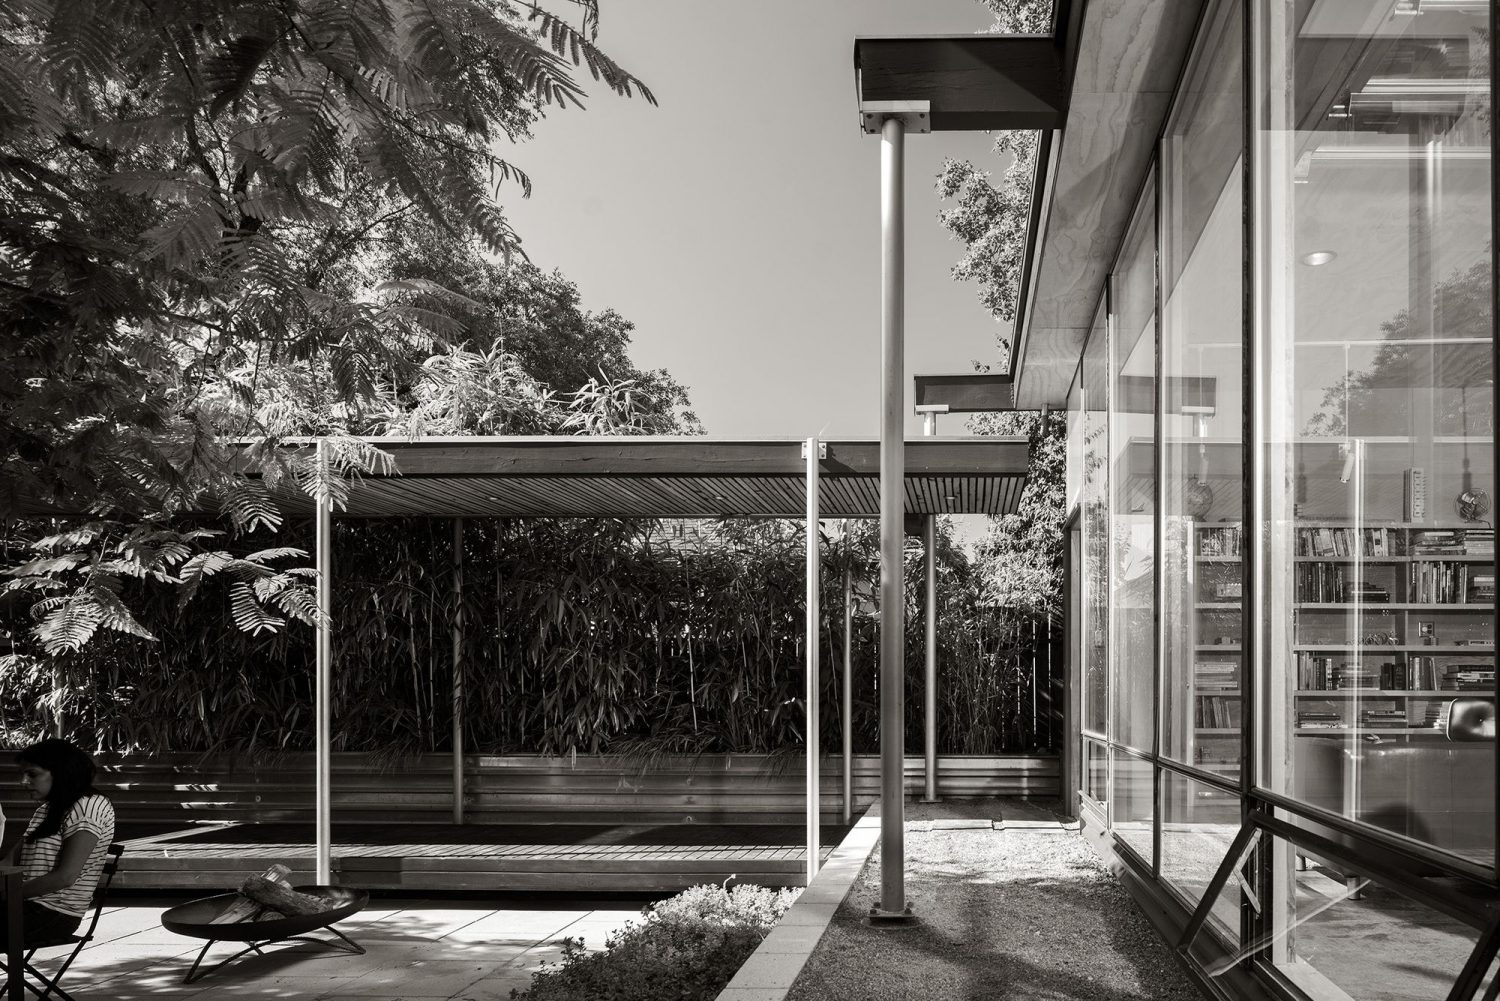 Grasshopper Studio and Courtyard by Wittman Estes